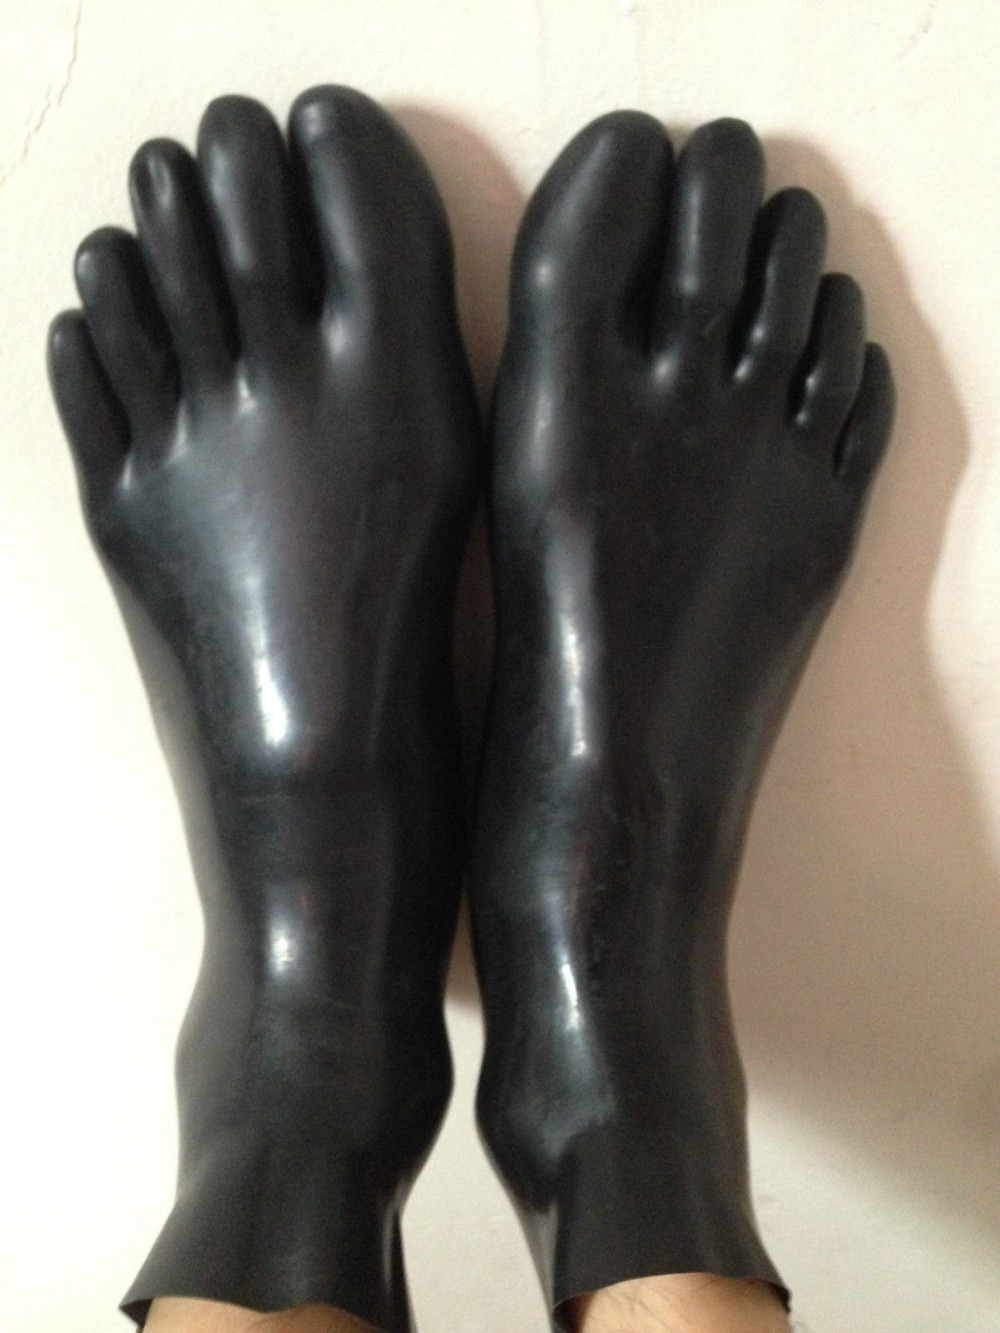 Special Offer Instock Latex Fetish Sock Latex Rubber Toe Sock Unisex Latex Rubber Short Sock 0.4mm Thickness black only M size